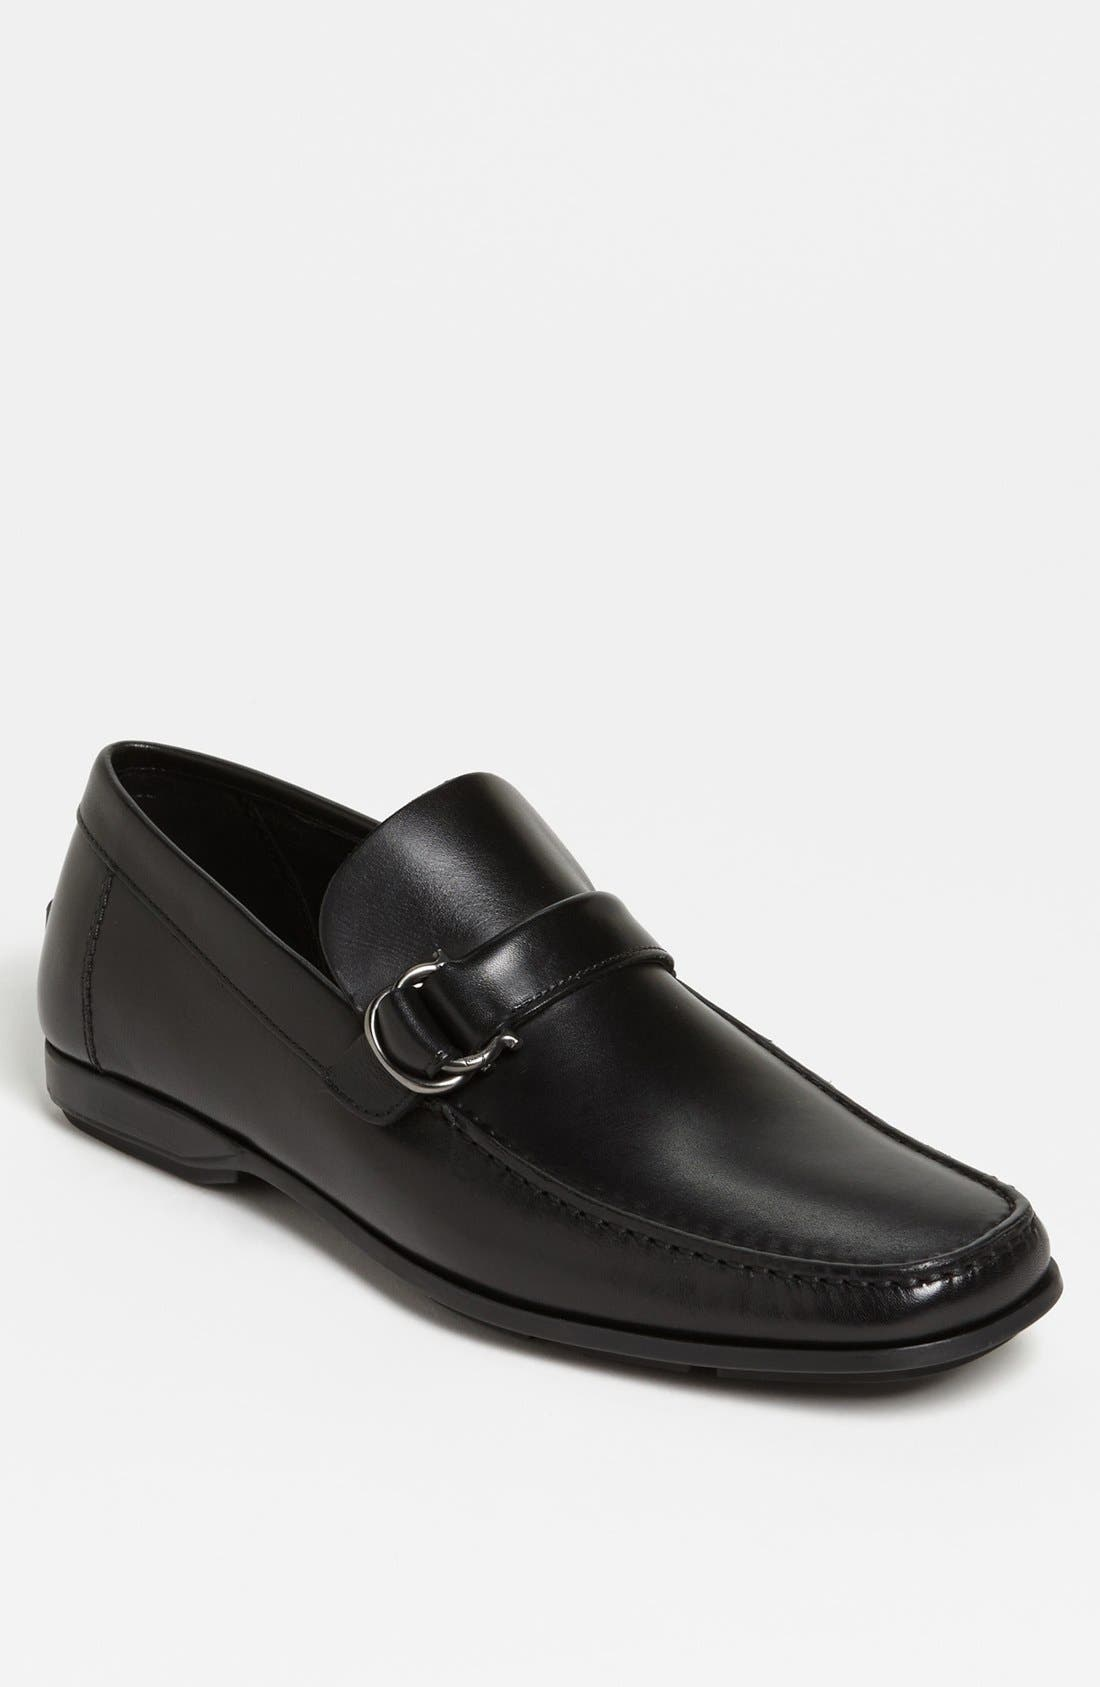 Main Image - Salvatore Ferragamo 'Tremiti' Bit Loafer